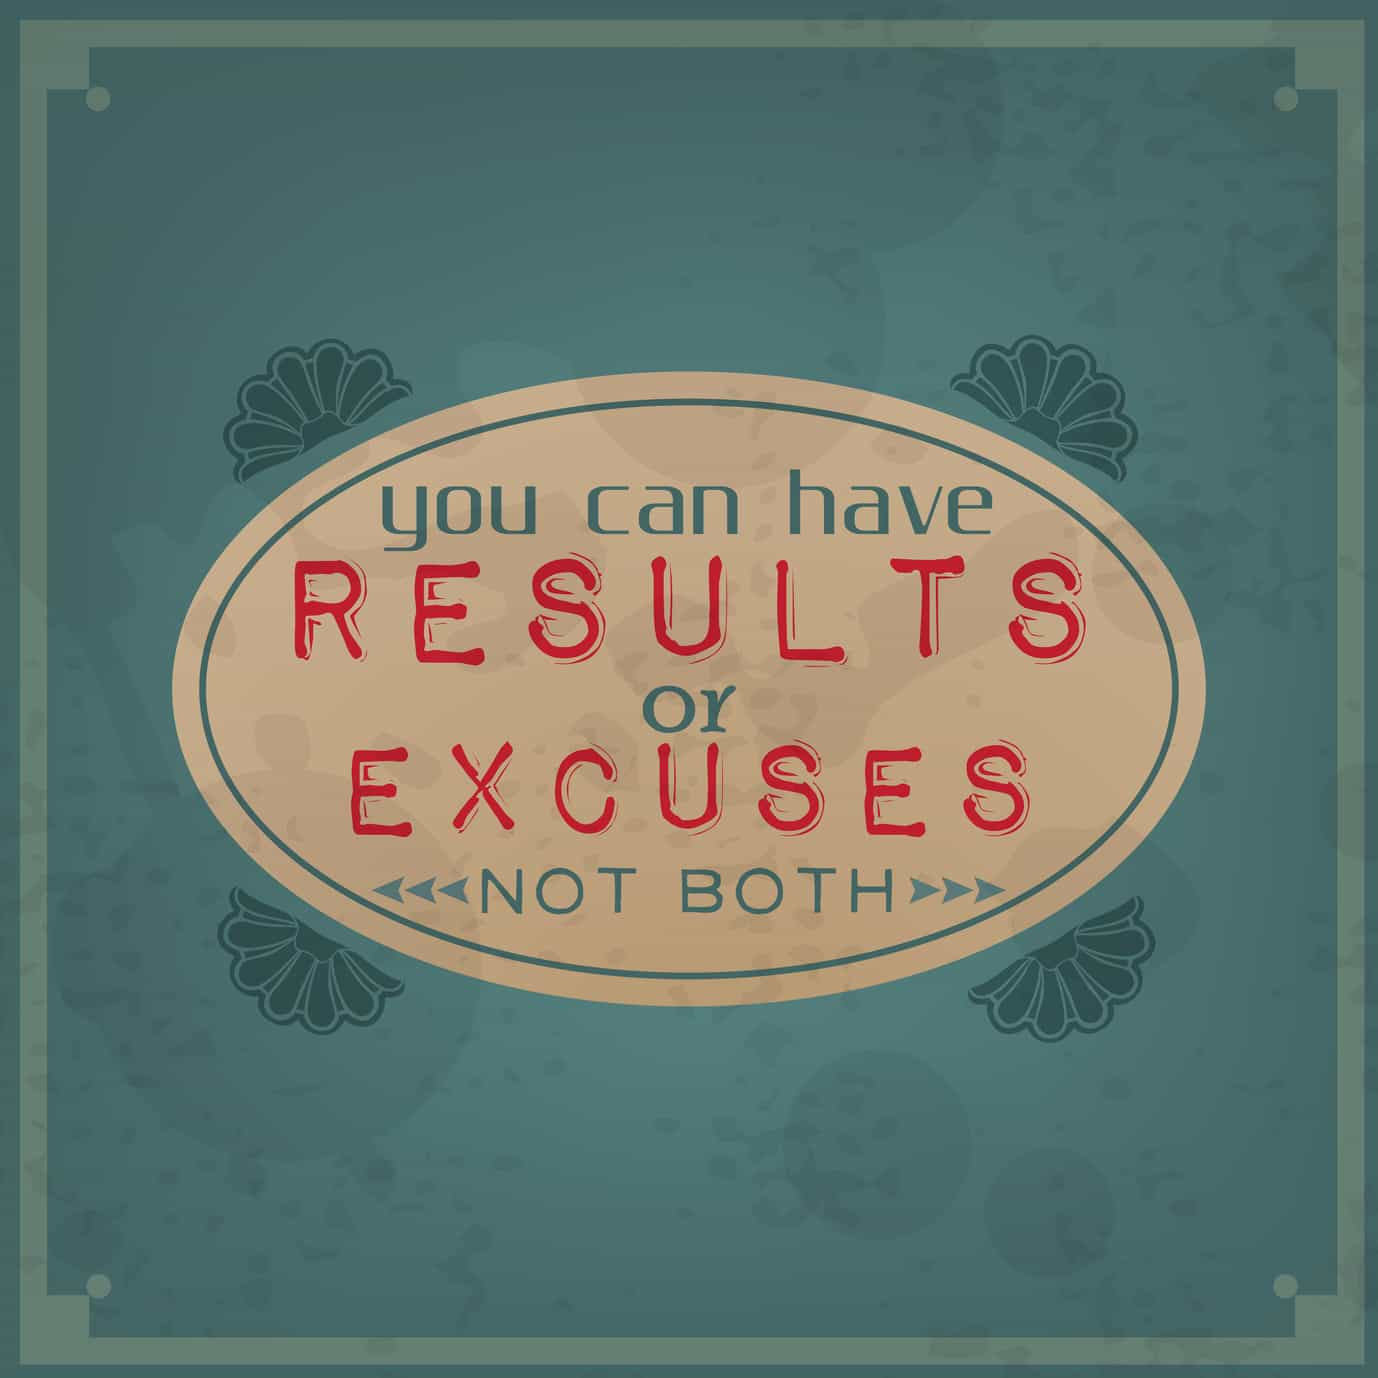 You can have results or excuses, not both / Vintage Typographic Background / Motivational Quote / Retro Label With Calligraphic Elements